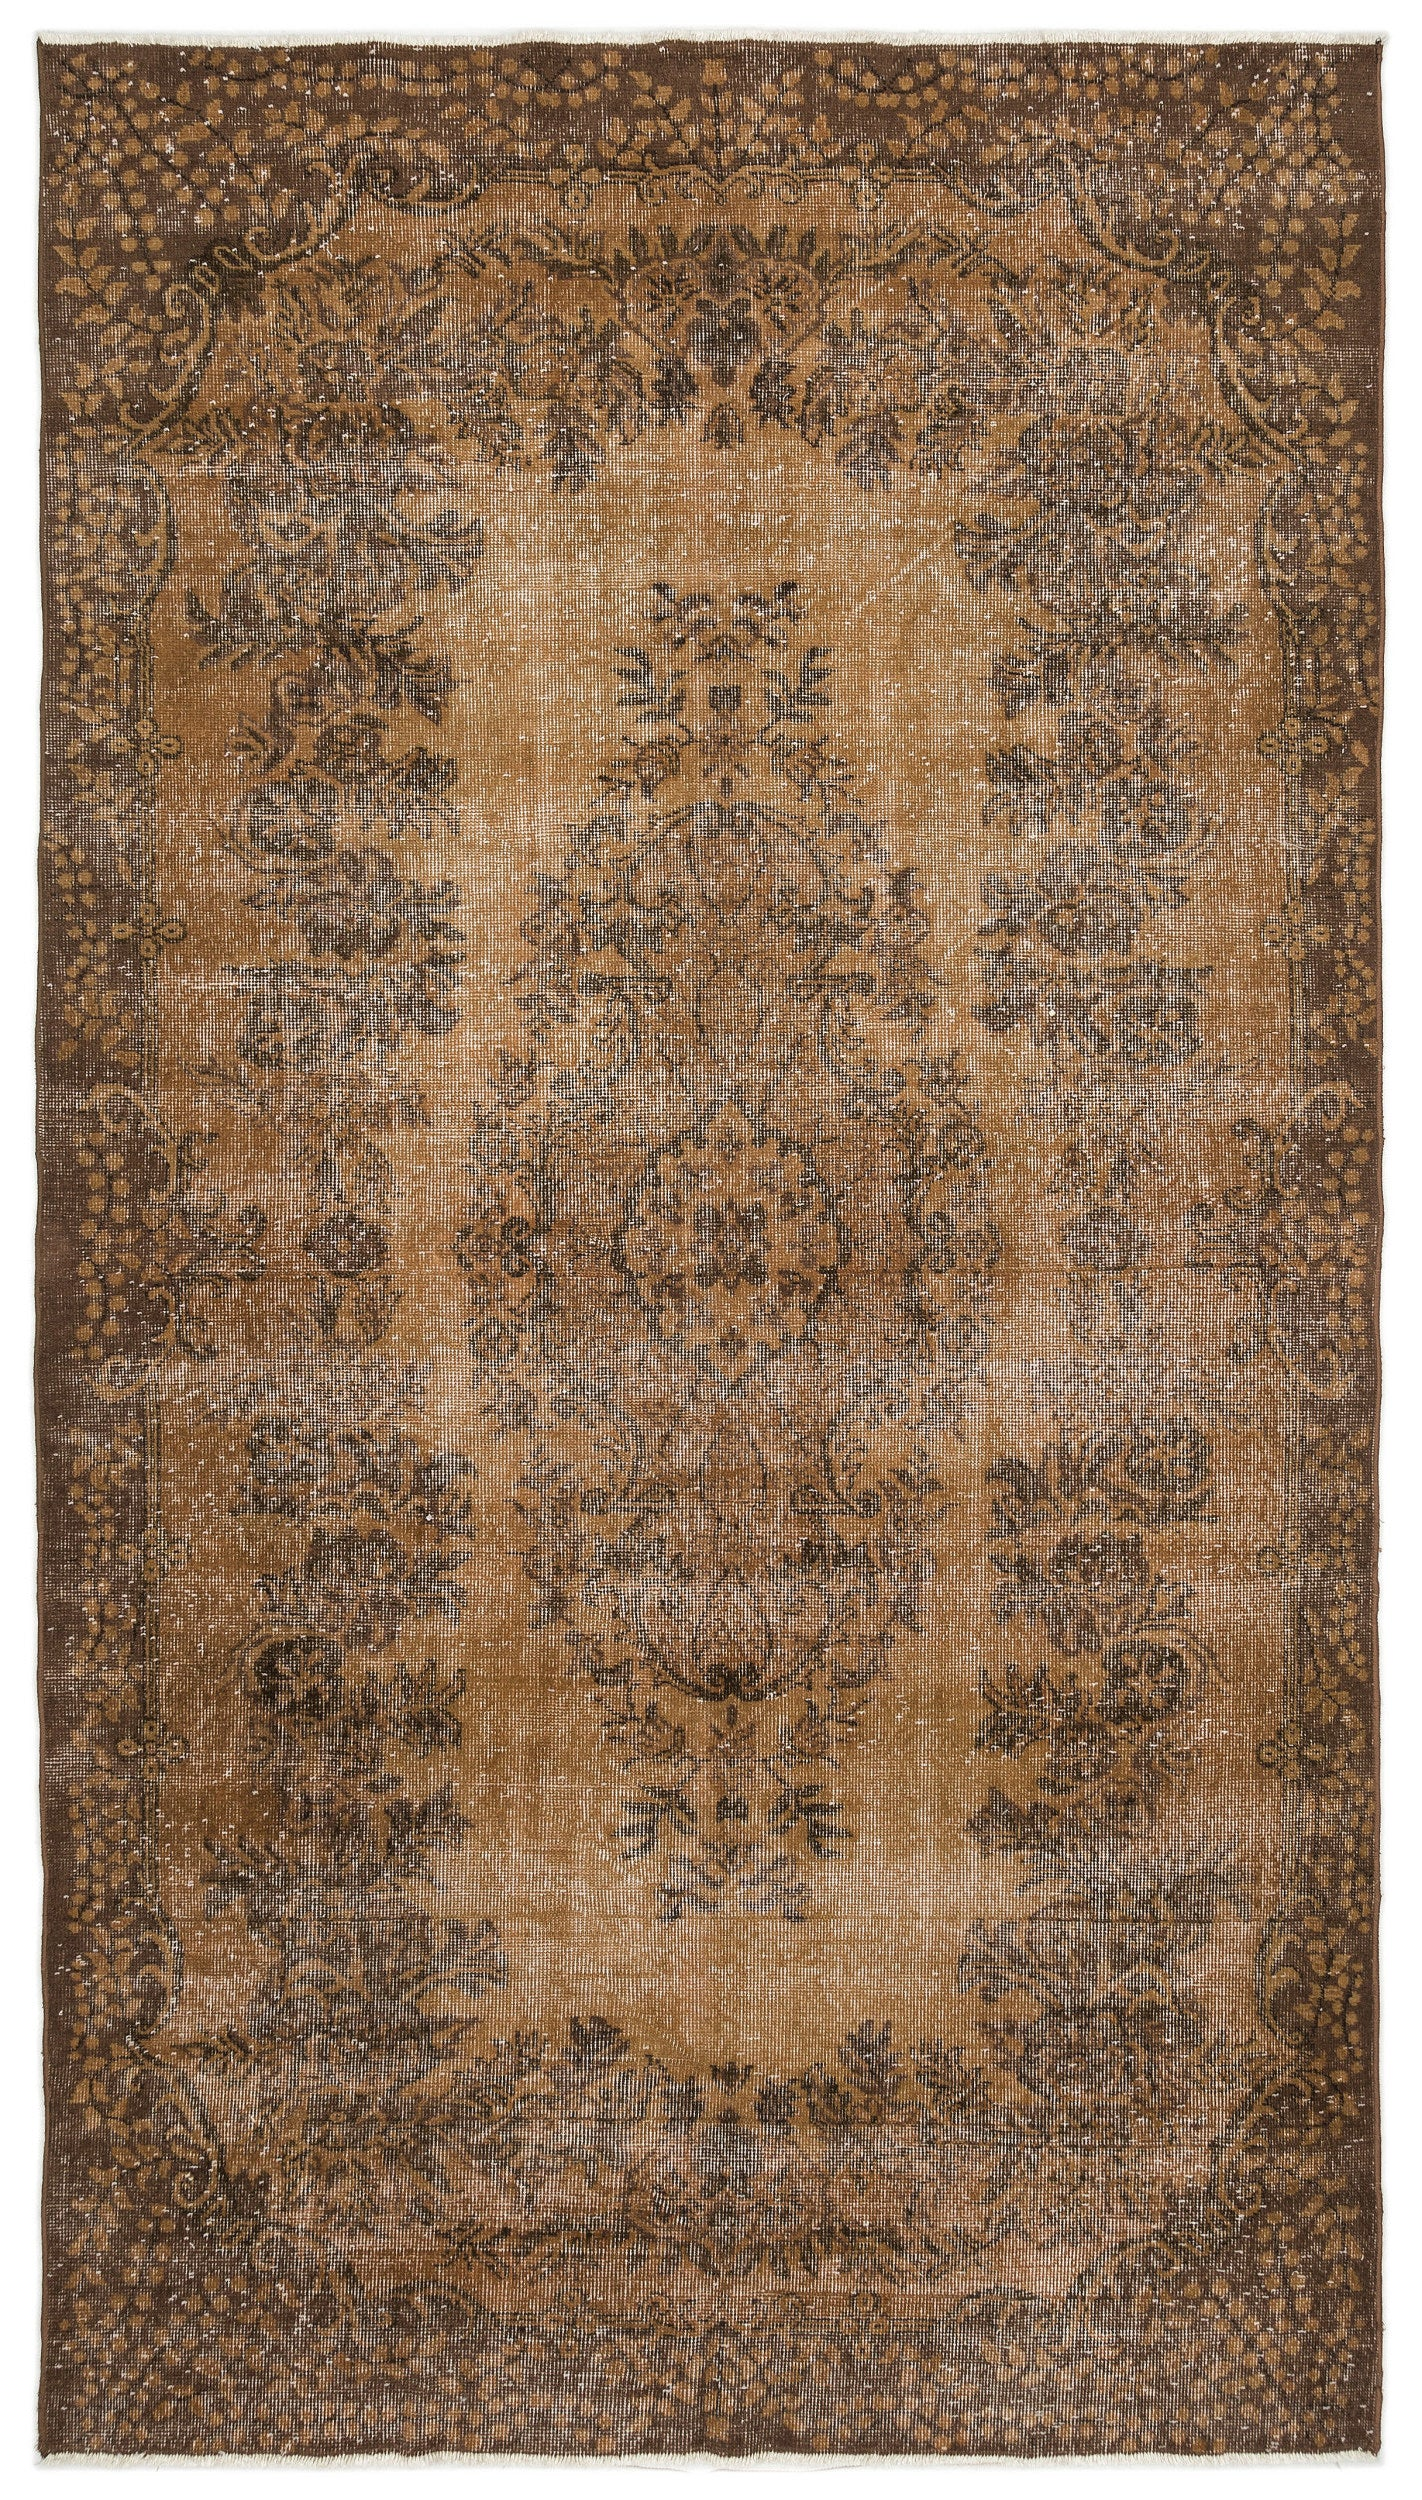 Brown Over Dyed Vintage Rug 5'7'' x 10'0'' ft 170 x 305 cm